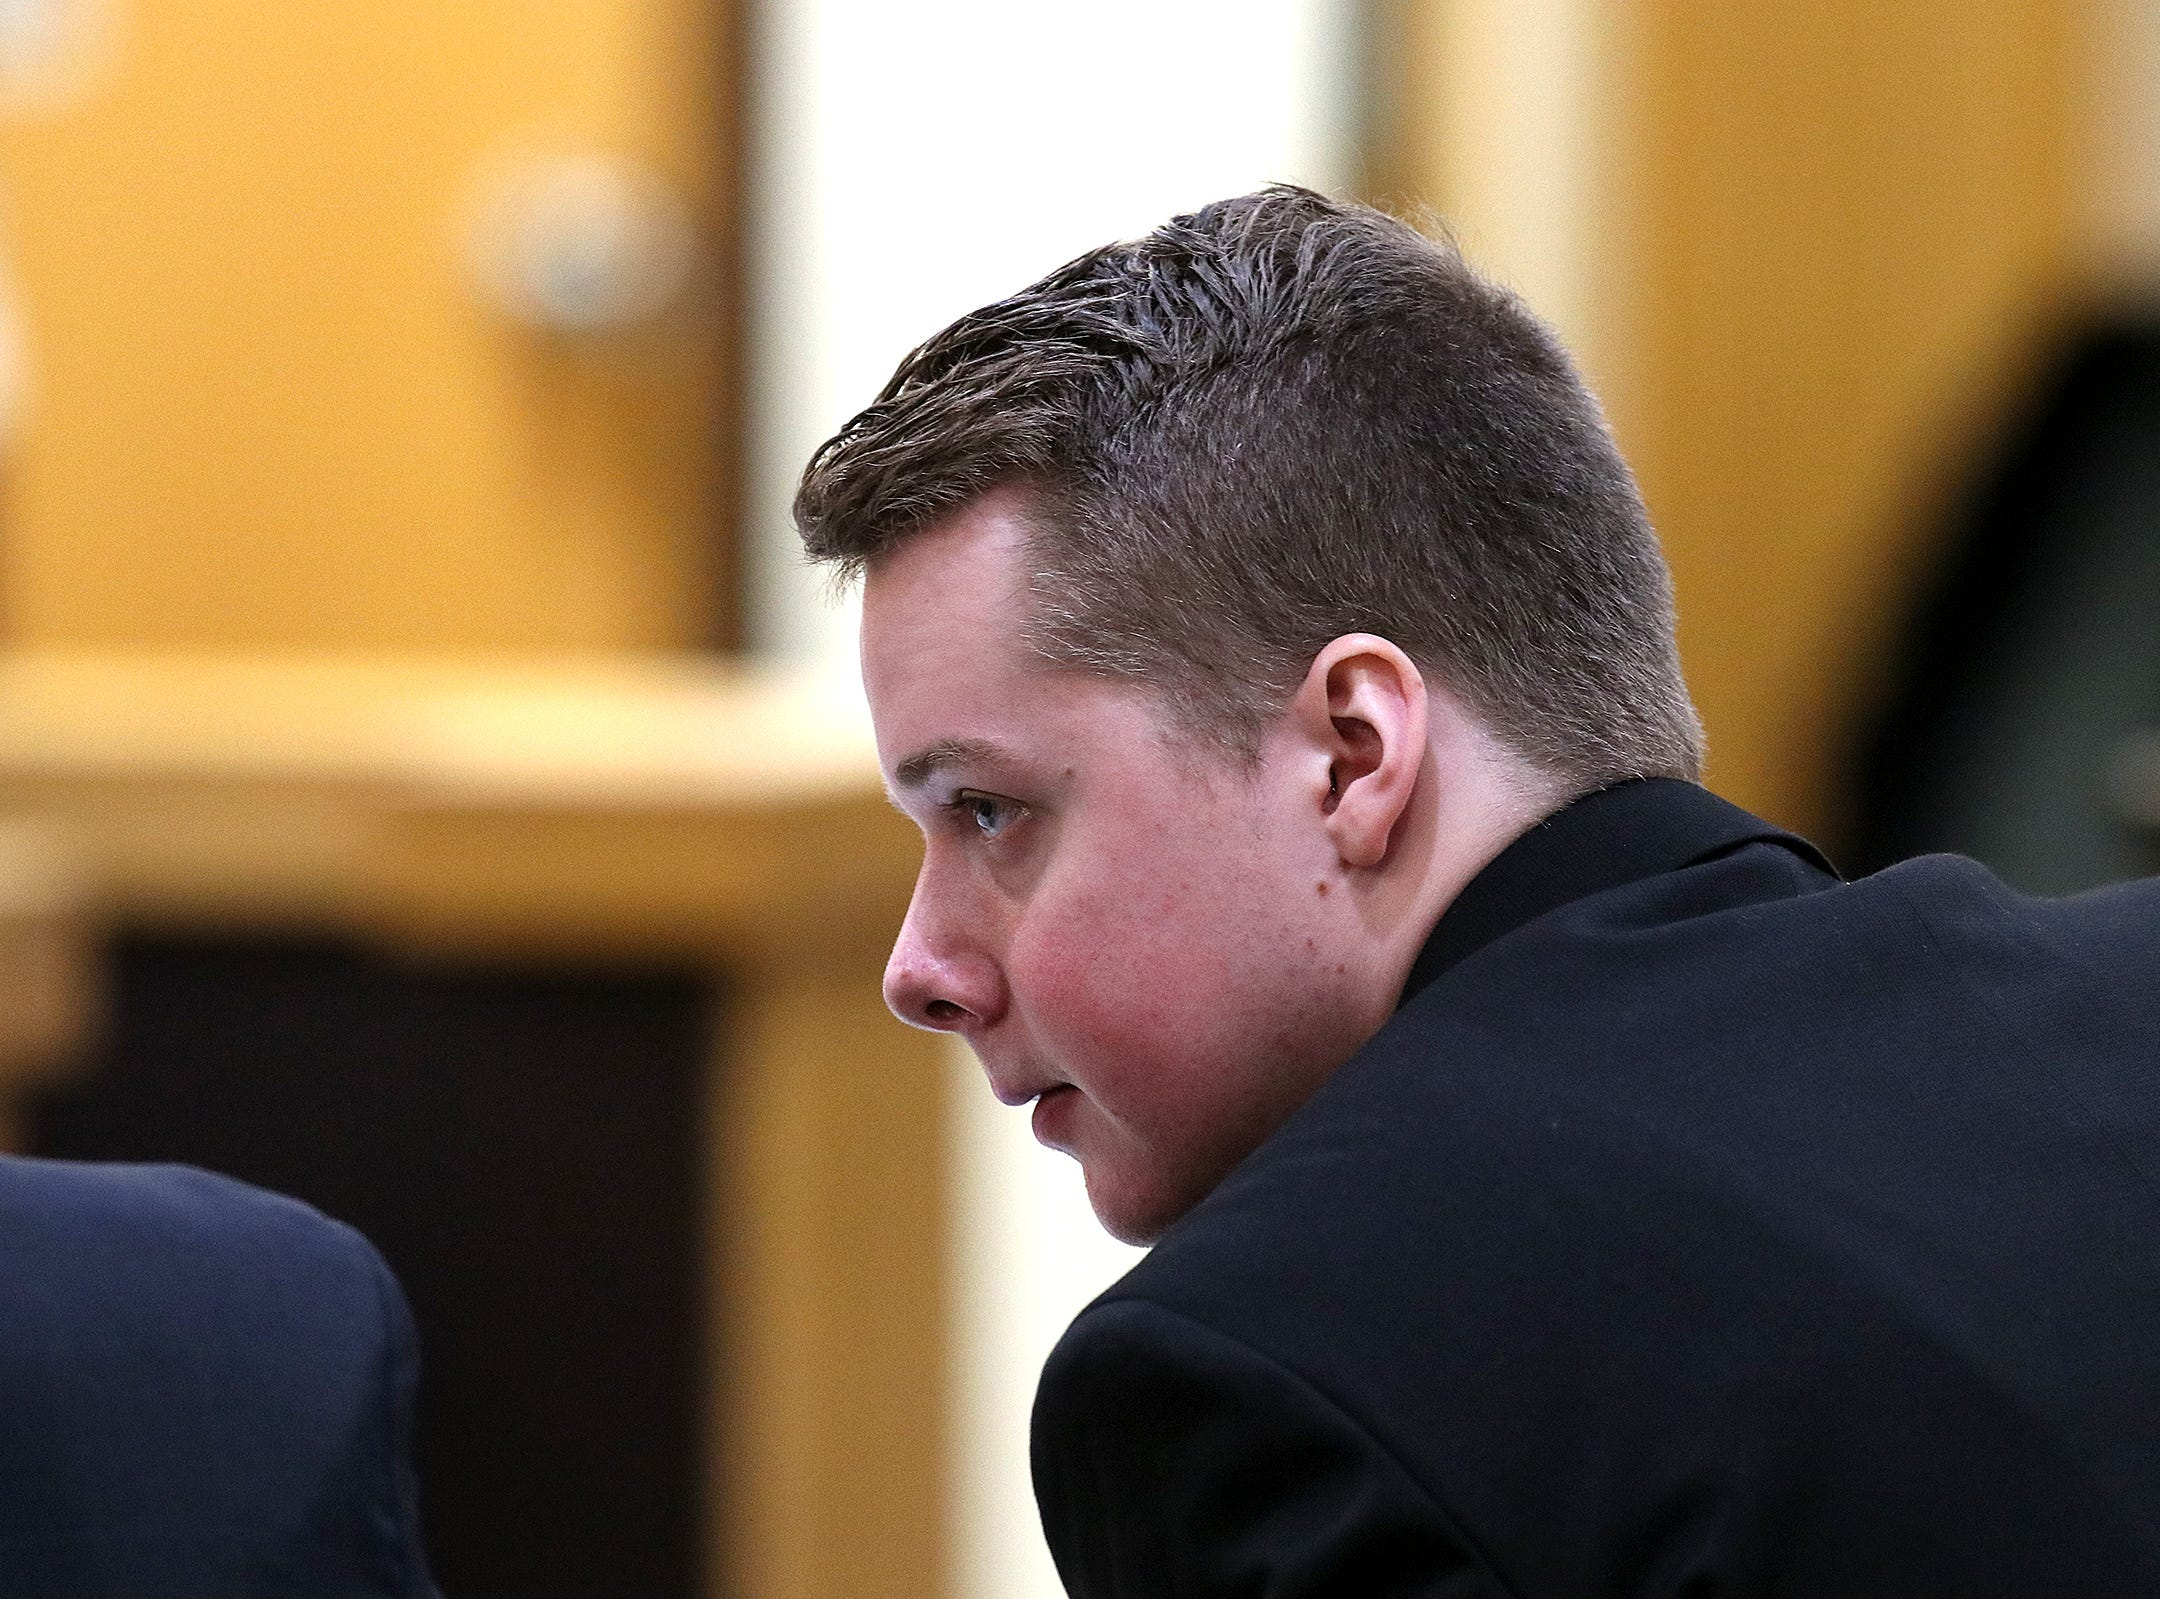 Liam McAtasney, who is charged with the murder of former high school classmate, Sarah Stern, speaks to his lawyer, Carlos Diaz-Cobo, during the second day of trial before Superior Court Judge Richard W. English at the Monmouth County Courthouse in Freehold, NJ Thursday January 24, 2019.